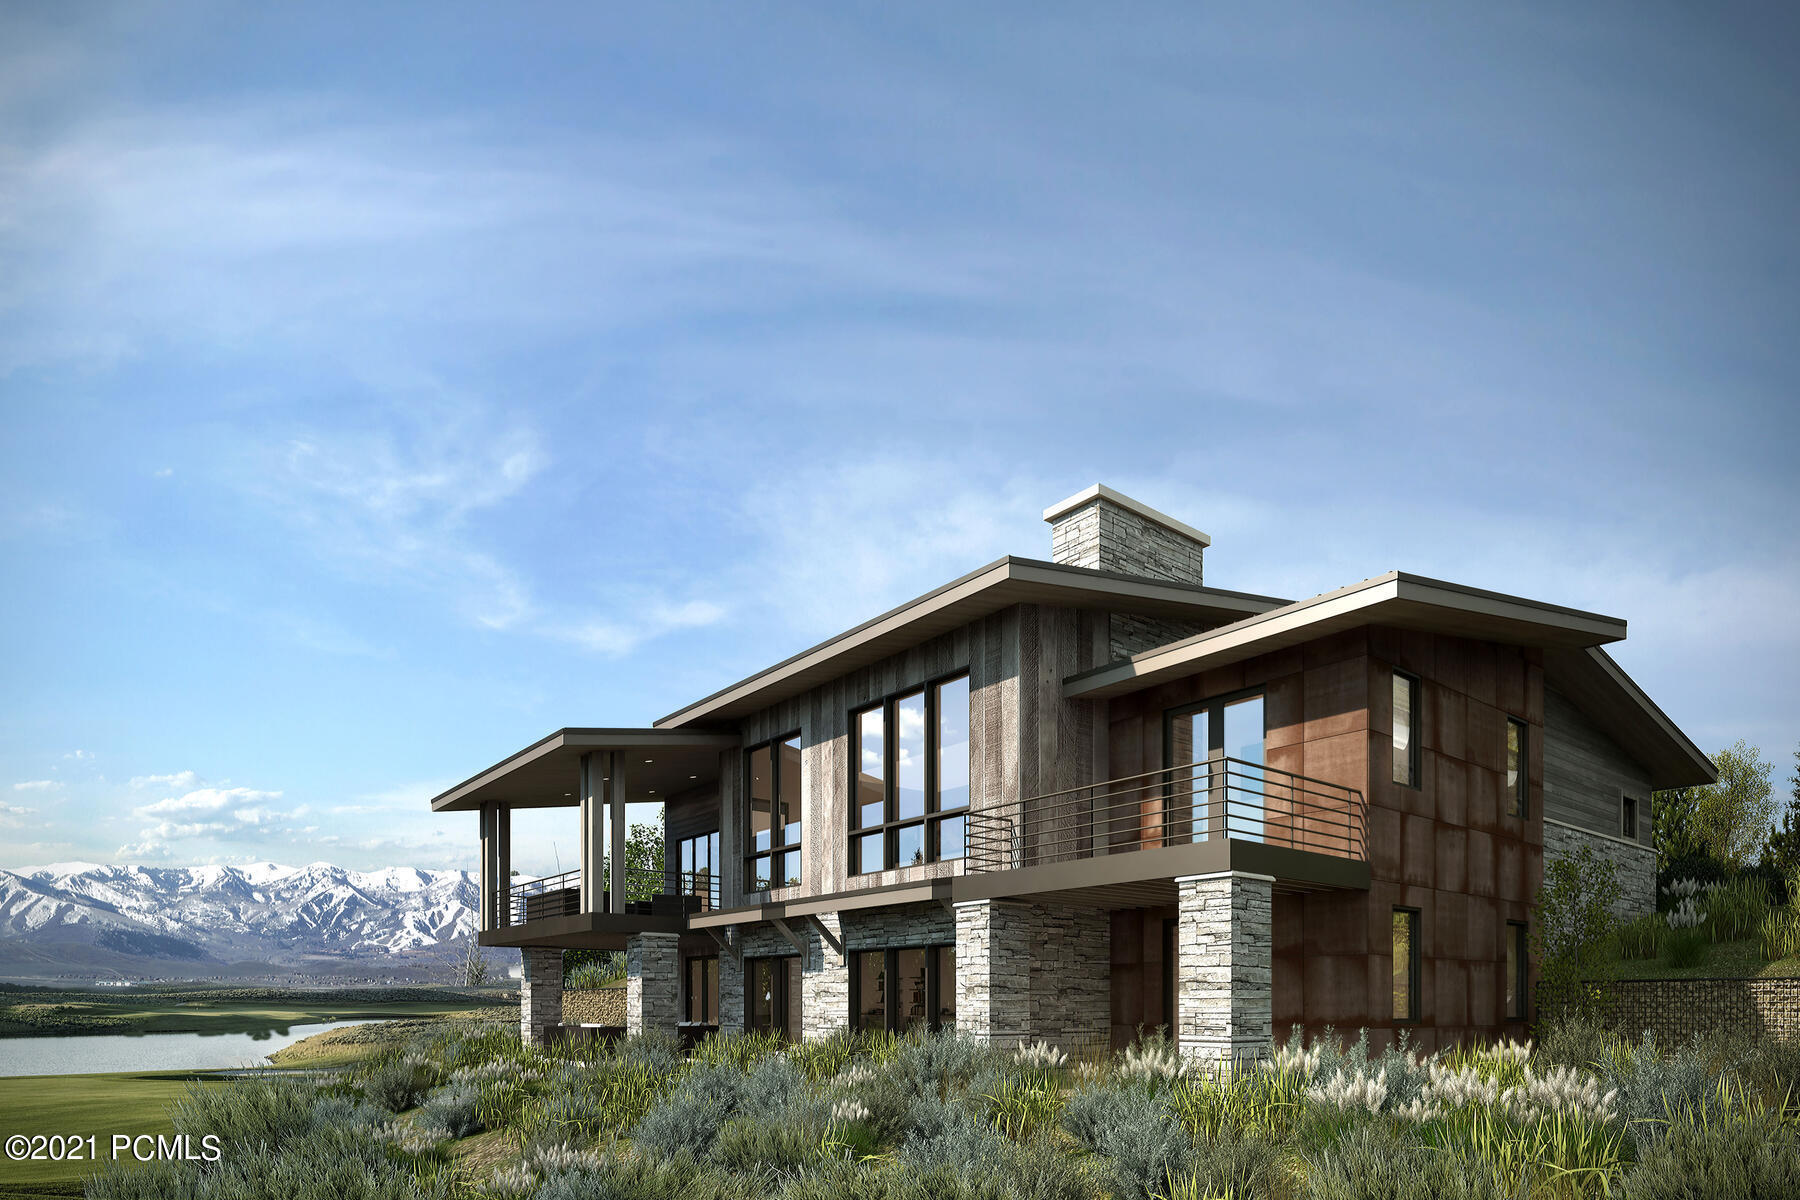 Located in the Buffalo Jump Neighborhood, the O'Keeffe is one of the most sought-after Residence floor plans. This absolutely gorgeous homesite catches awesome views of the Wasatch Mountains. This O'Keeffe is the perfect location for a fun getaway. Just minutes from downtown Park City, Promontory stretches over 6,400 Acres and is the perfect four-season mountain club for all ages, offering a wide array of activities for the whole family.